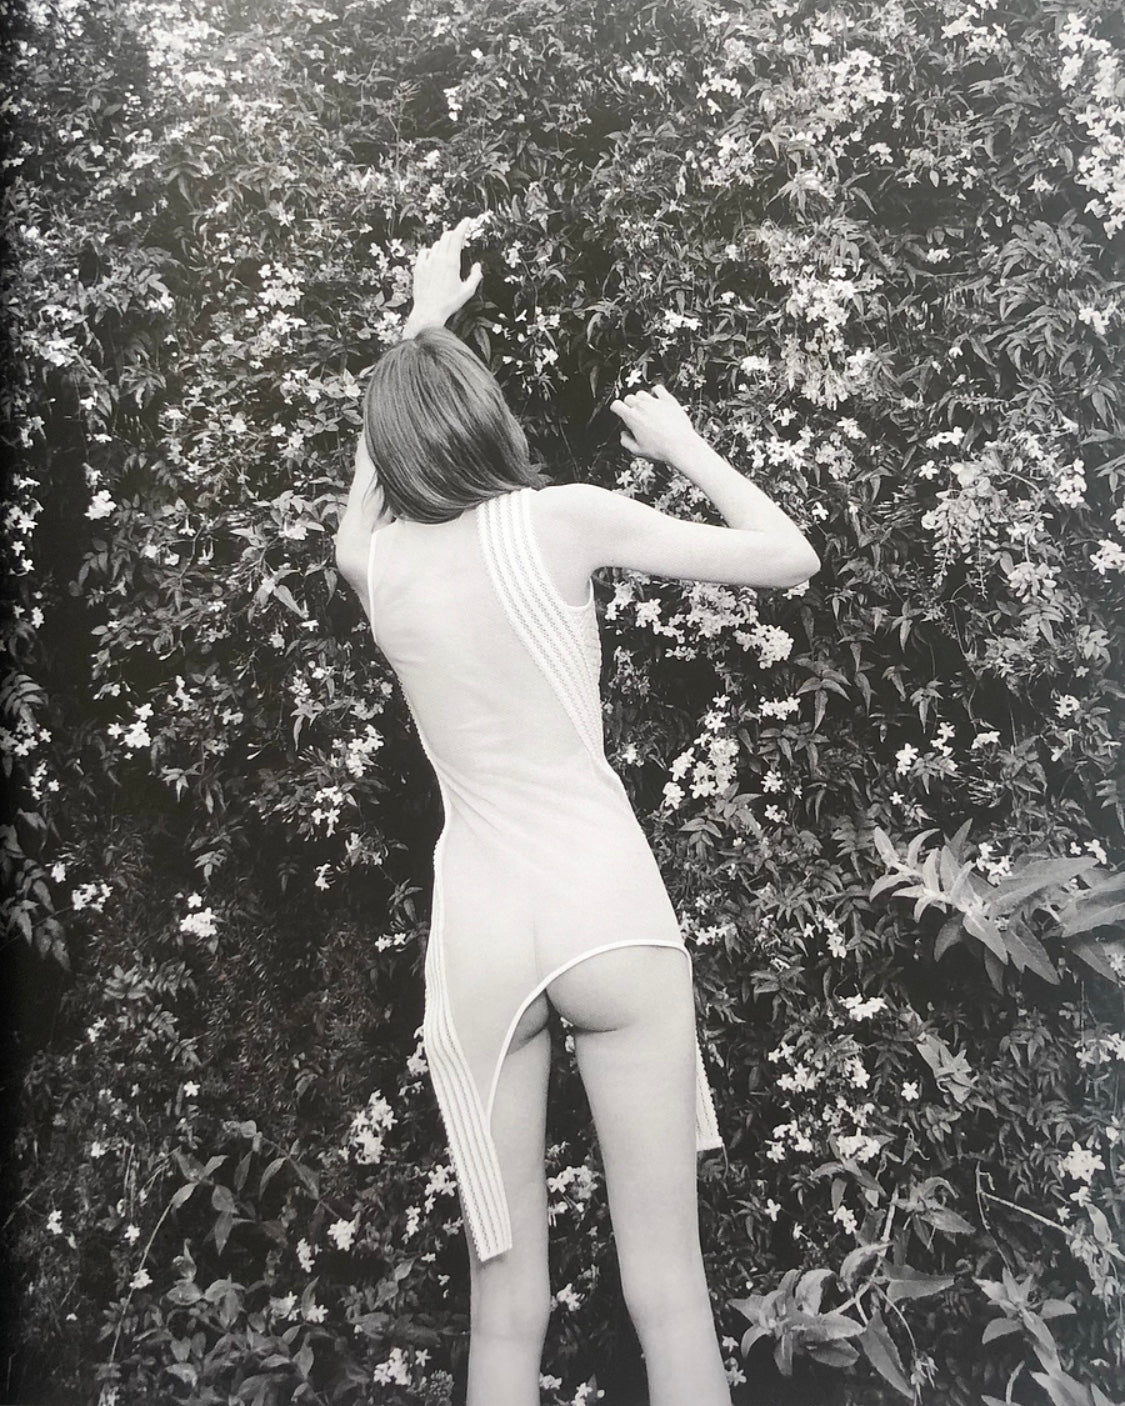 <b>Nudes Curated by Julien Dossena </b><br>Coco Capitán - Janus Books